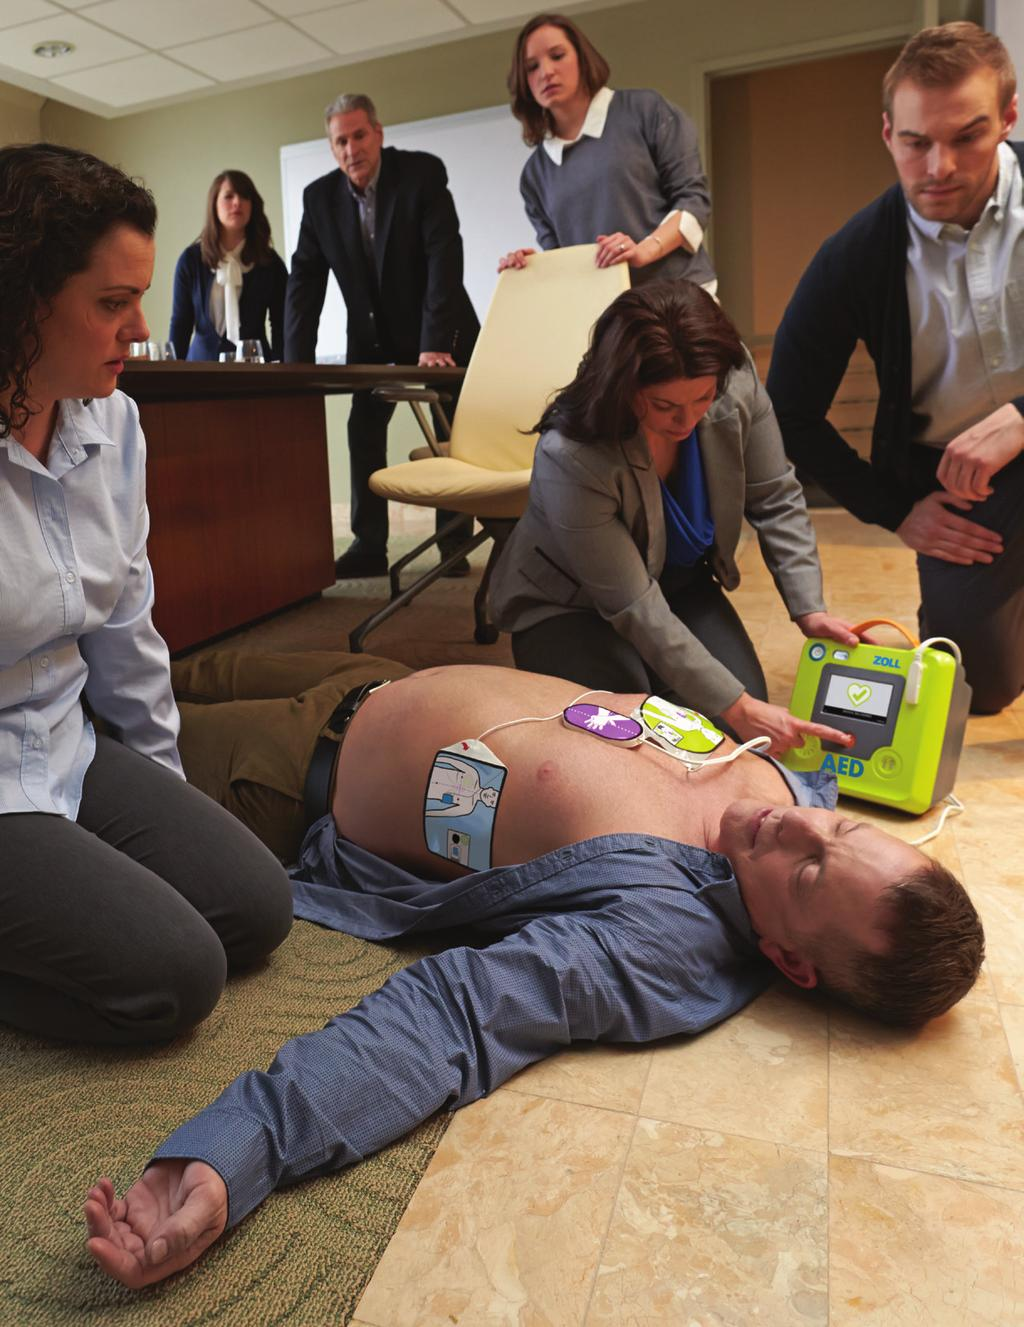 Research has shown ZOLL defibrillators equipped with Real CPR Help - providing real-time feedback for depth and rate of chest